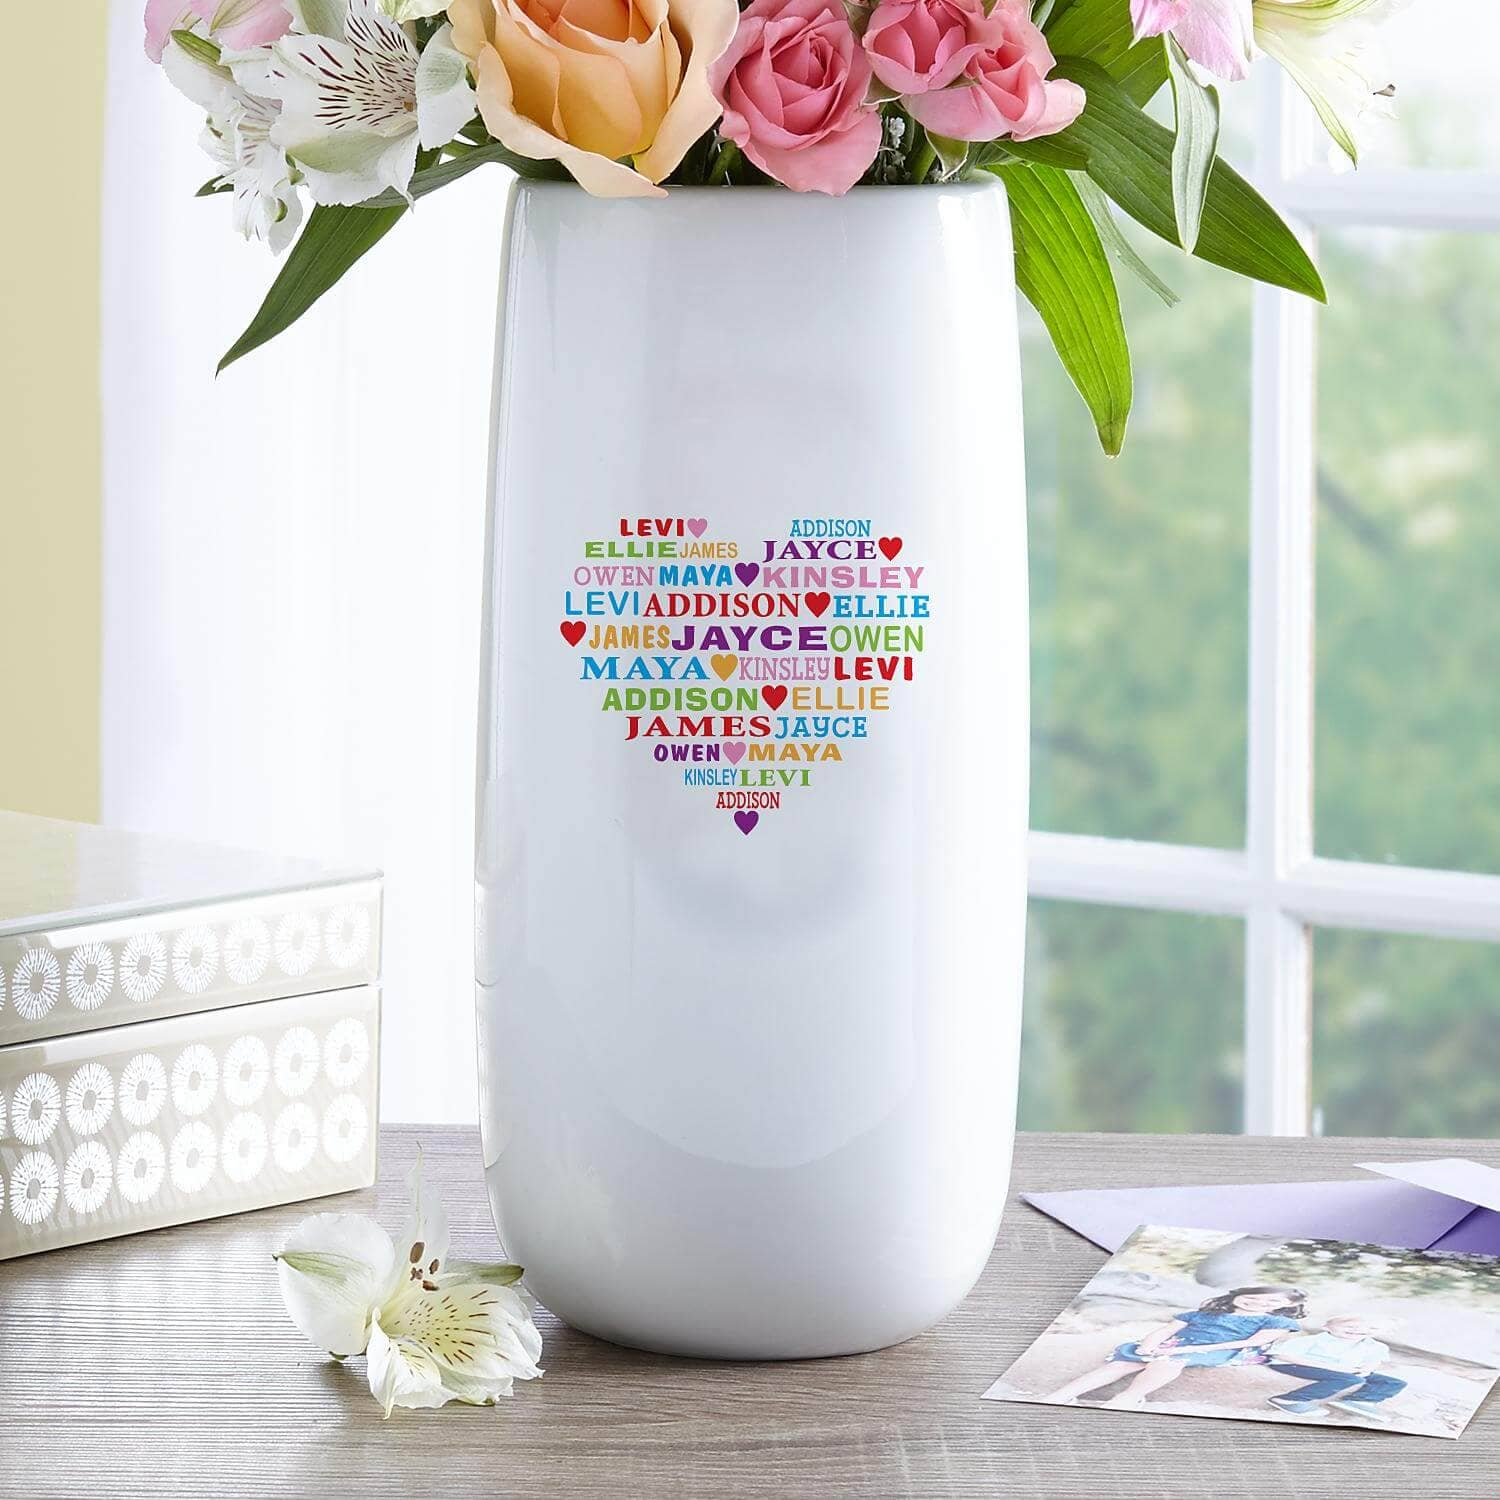 Personalized Vase with Everything She Loves